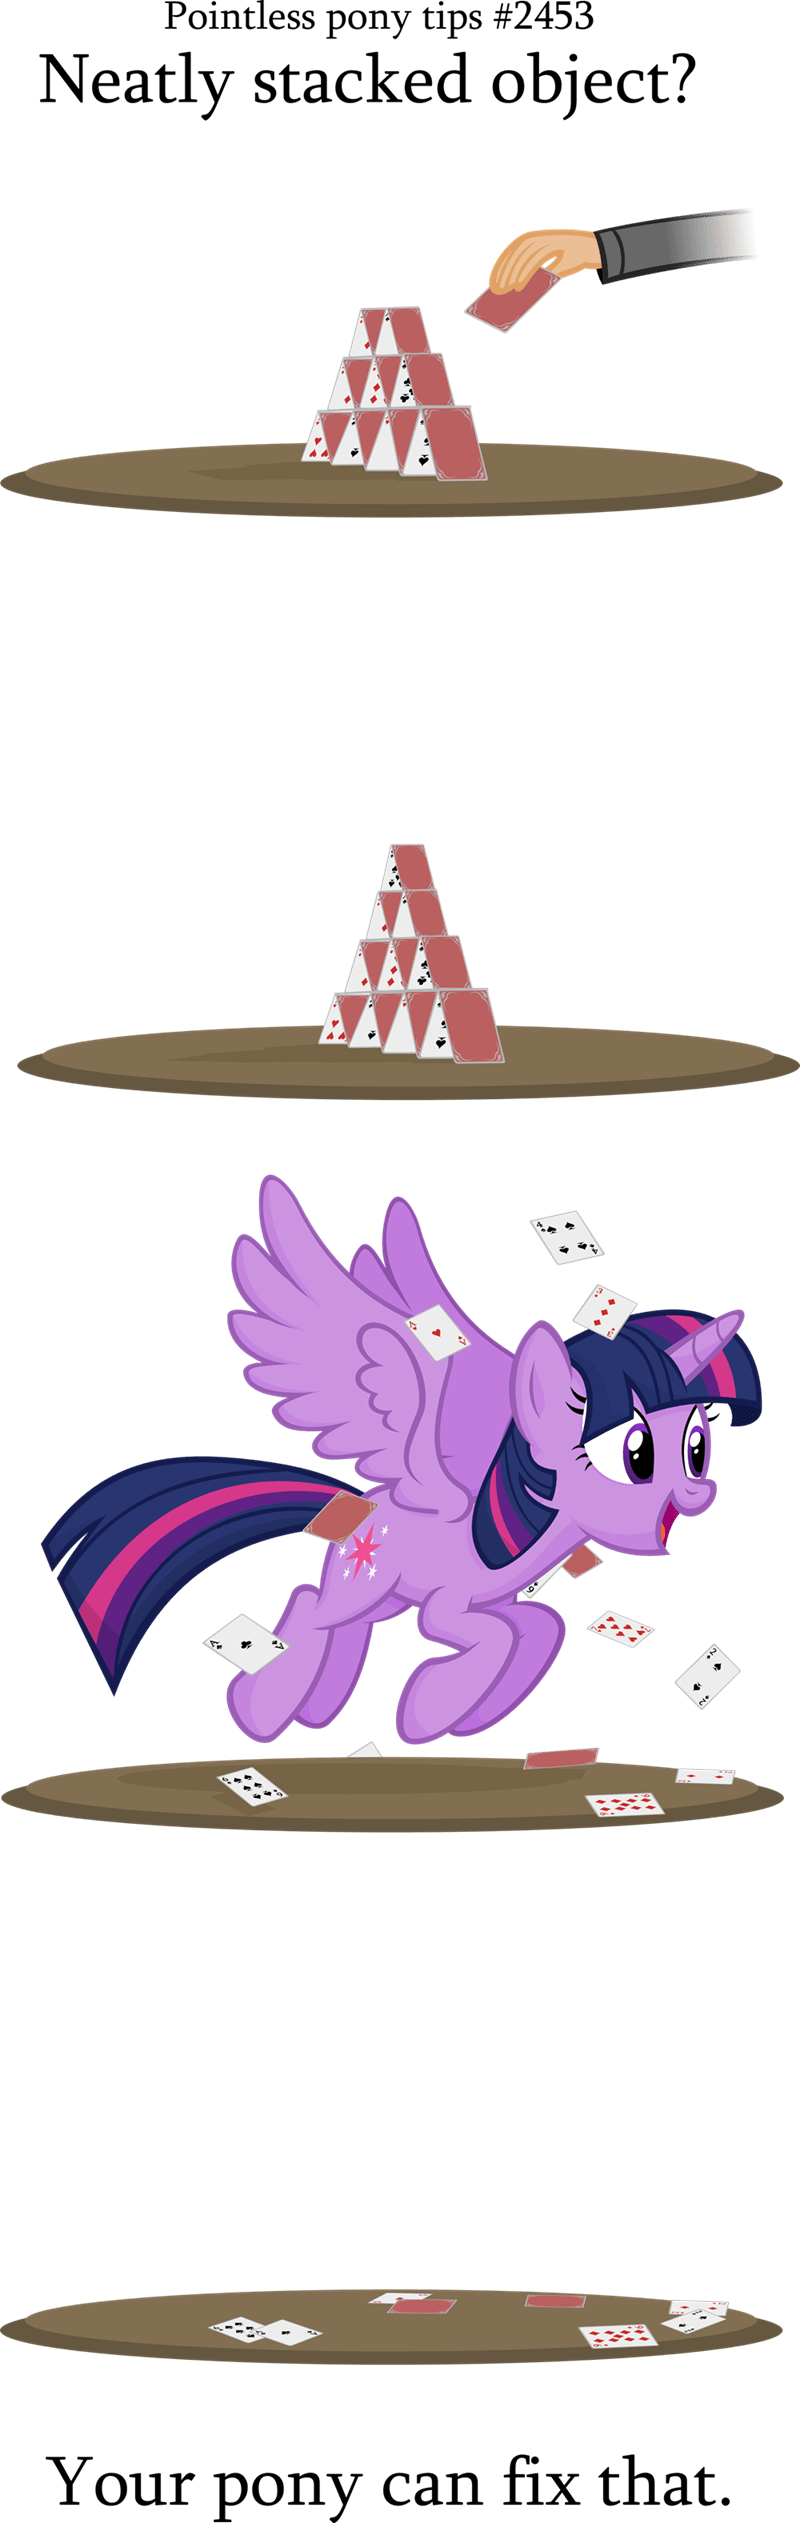 twilight sparkle jittery the dragon acting like animals - 9468102656